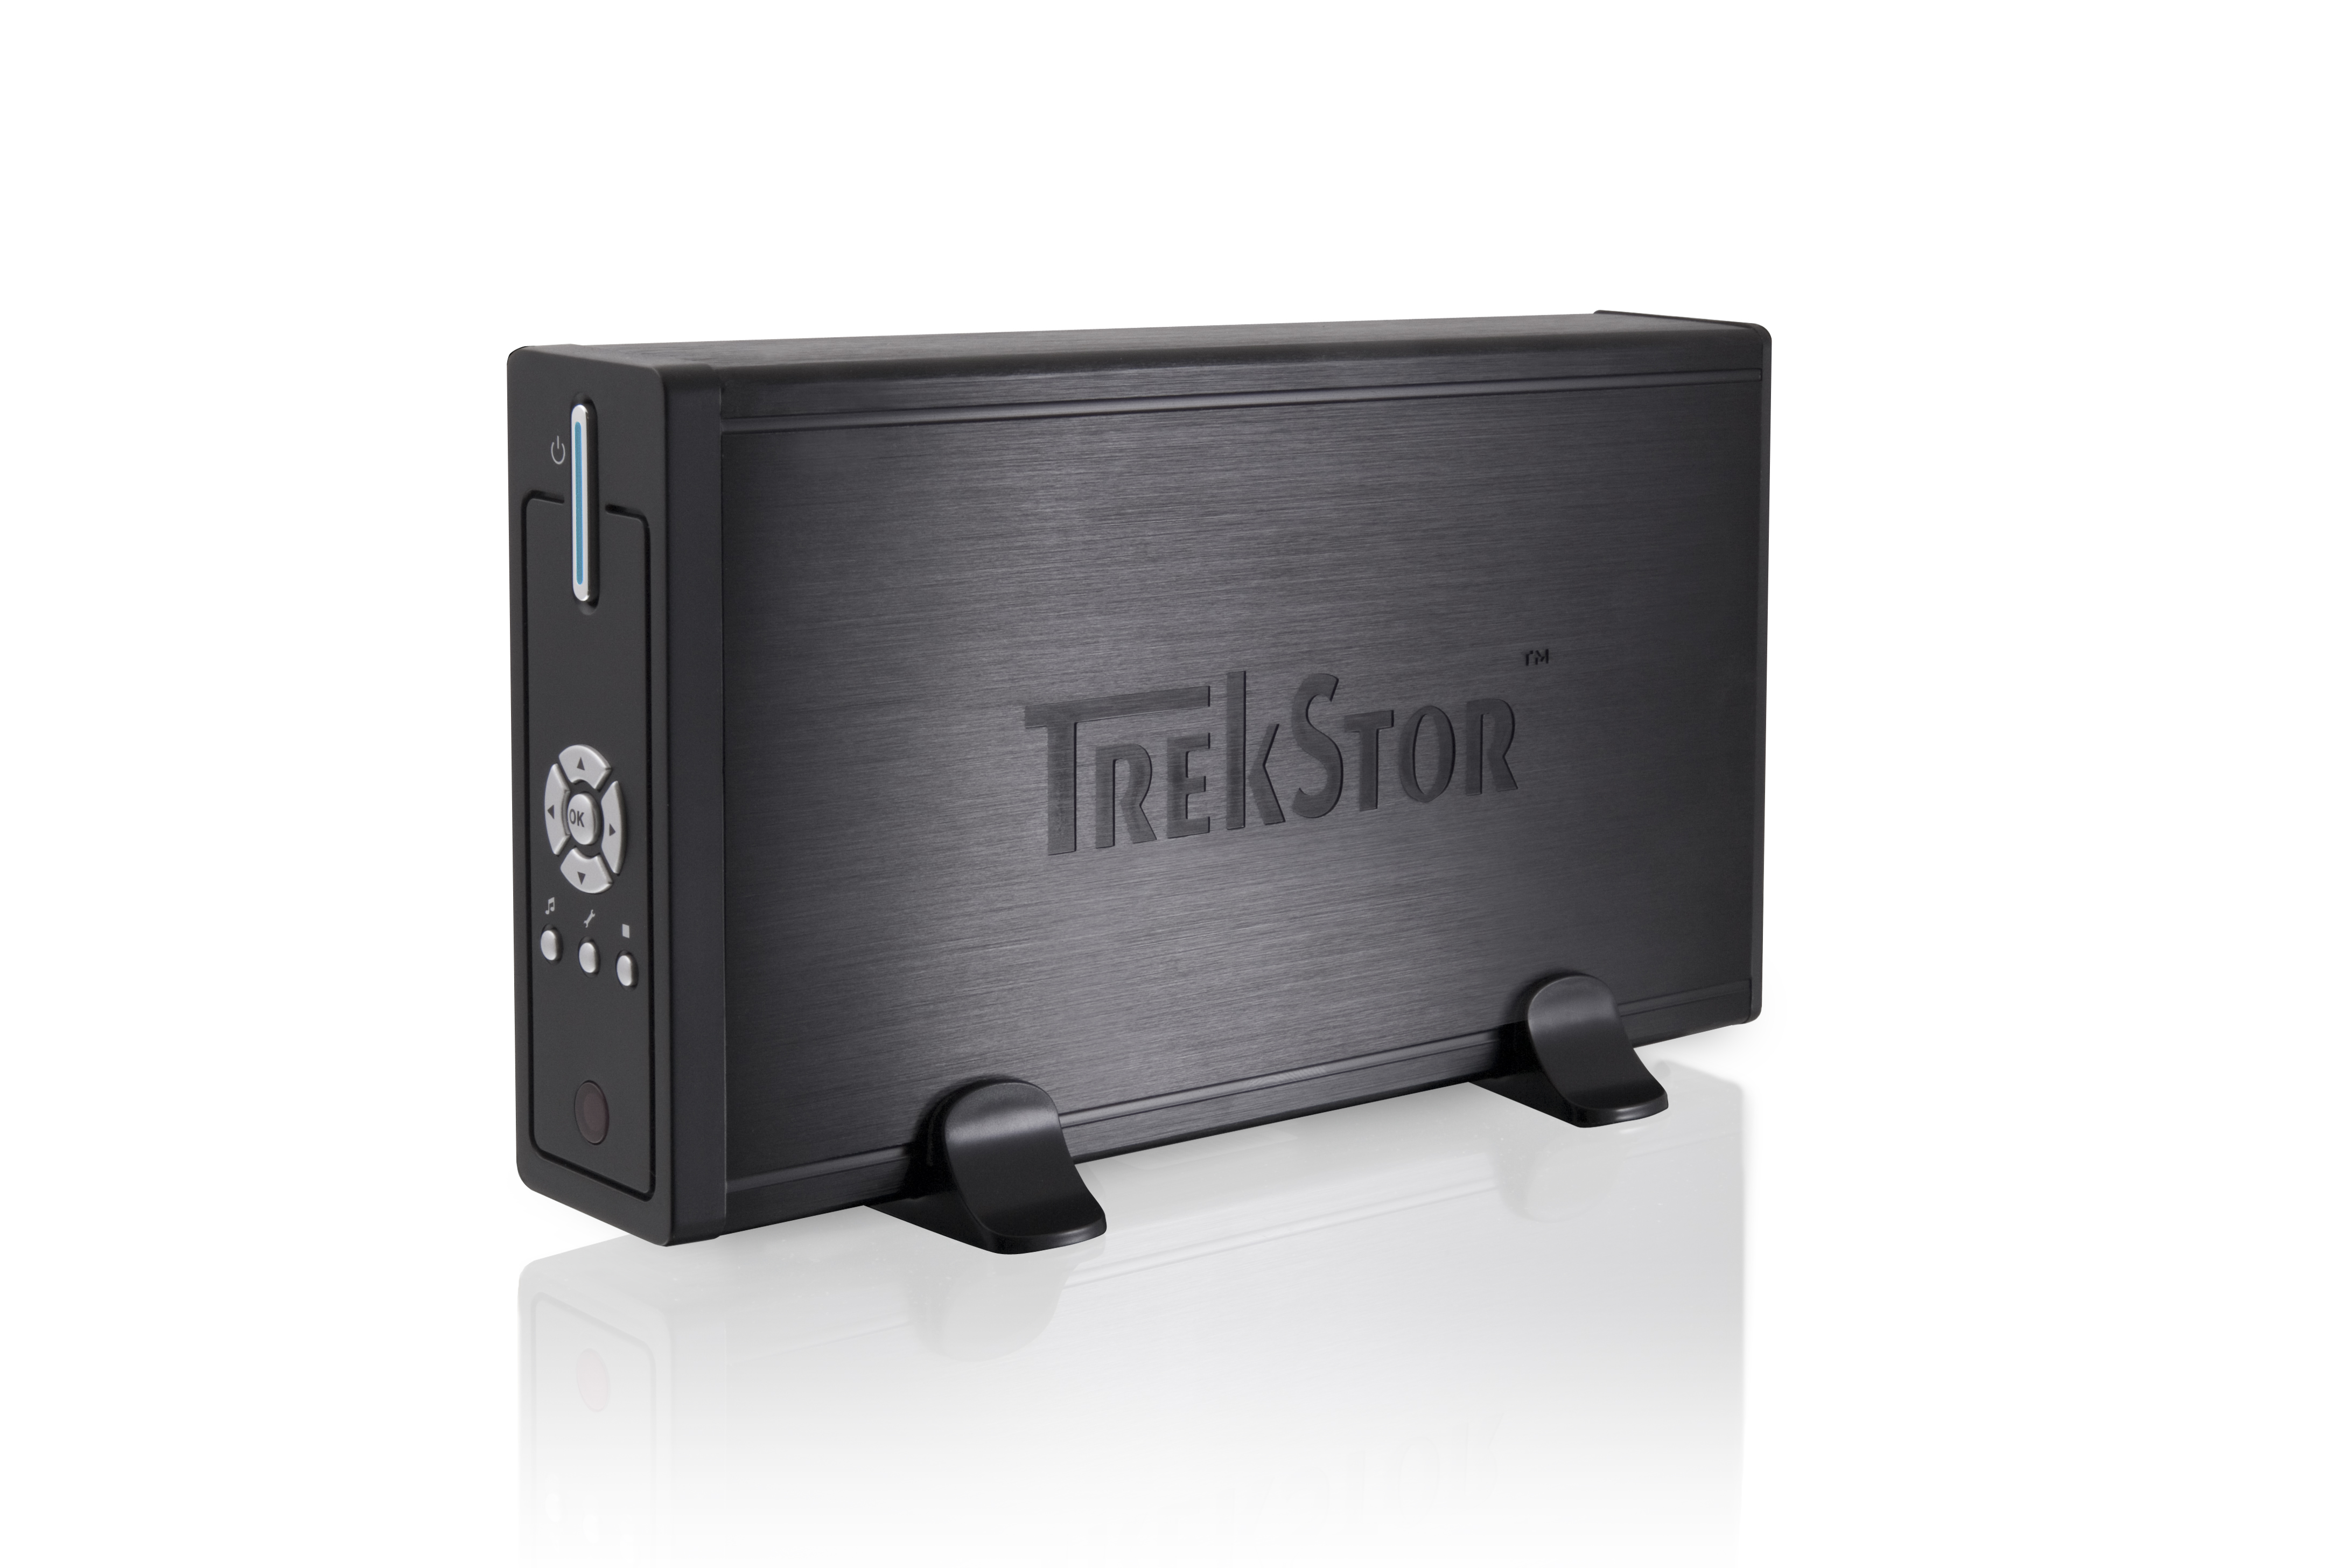 TrekStor MovieStation maxi t.um 320GB, Multimediaplayer ...